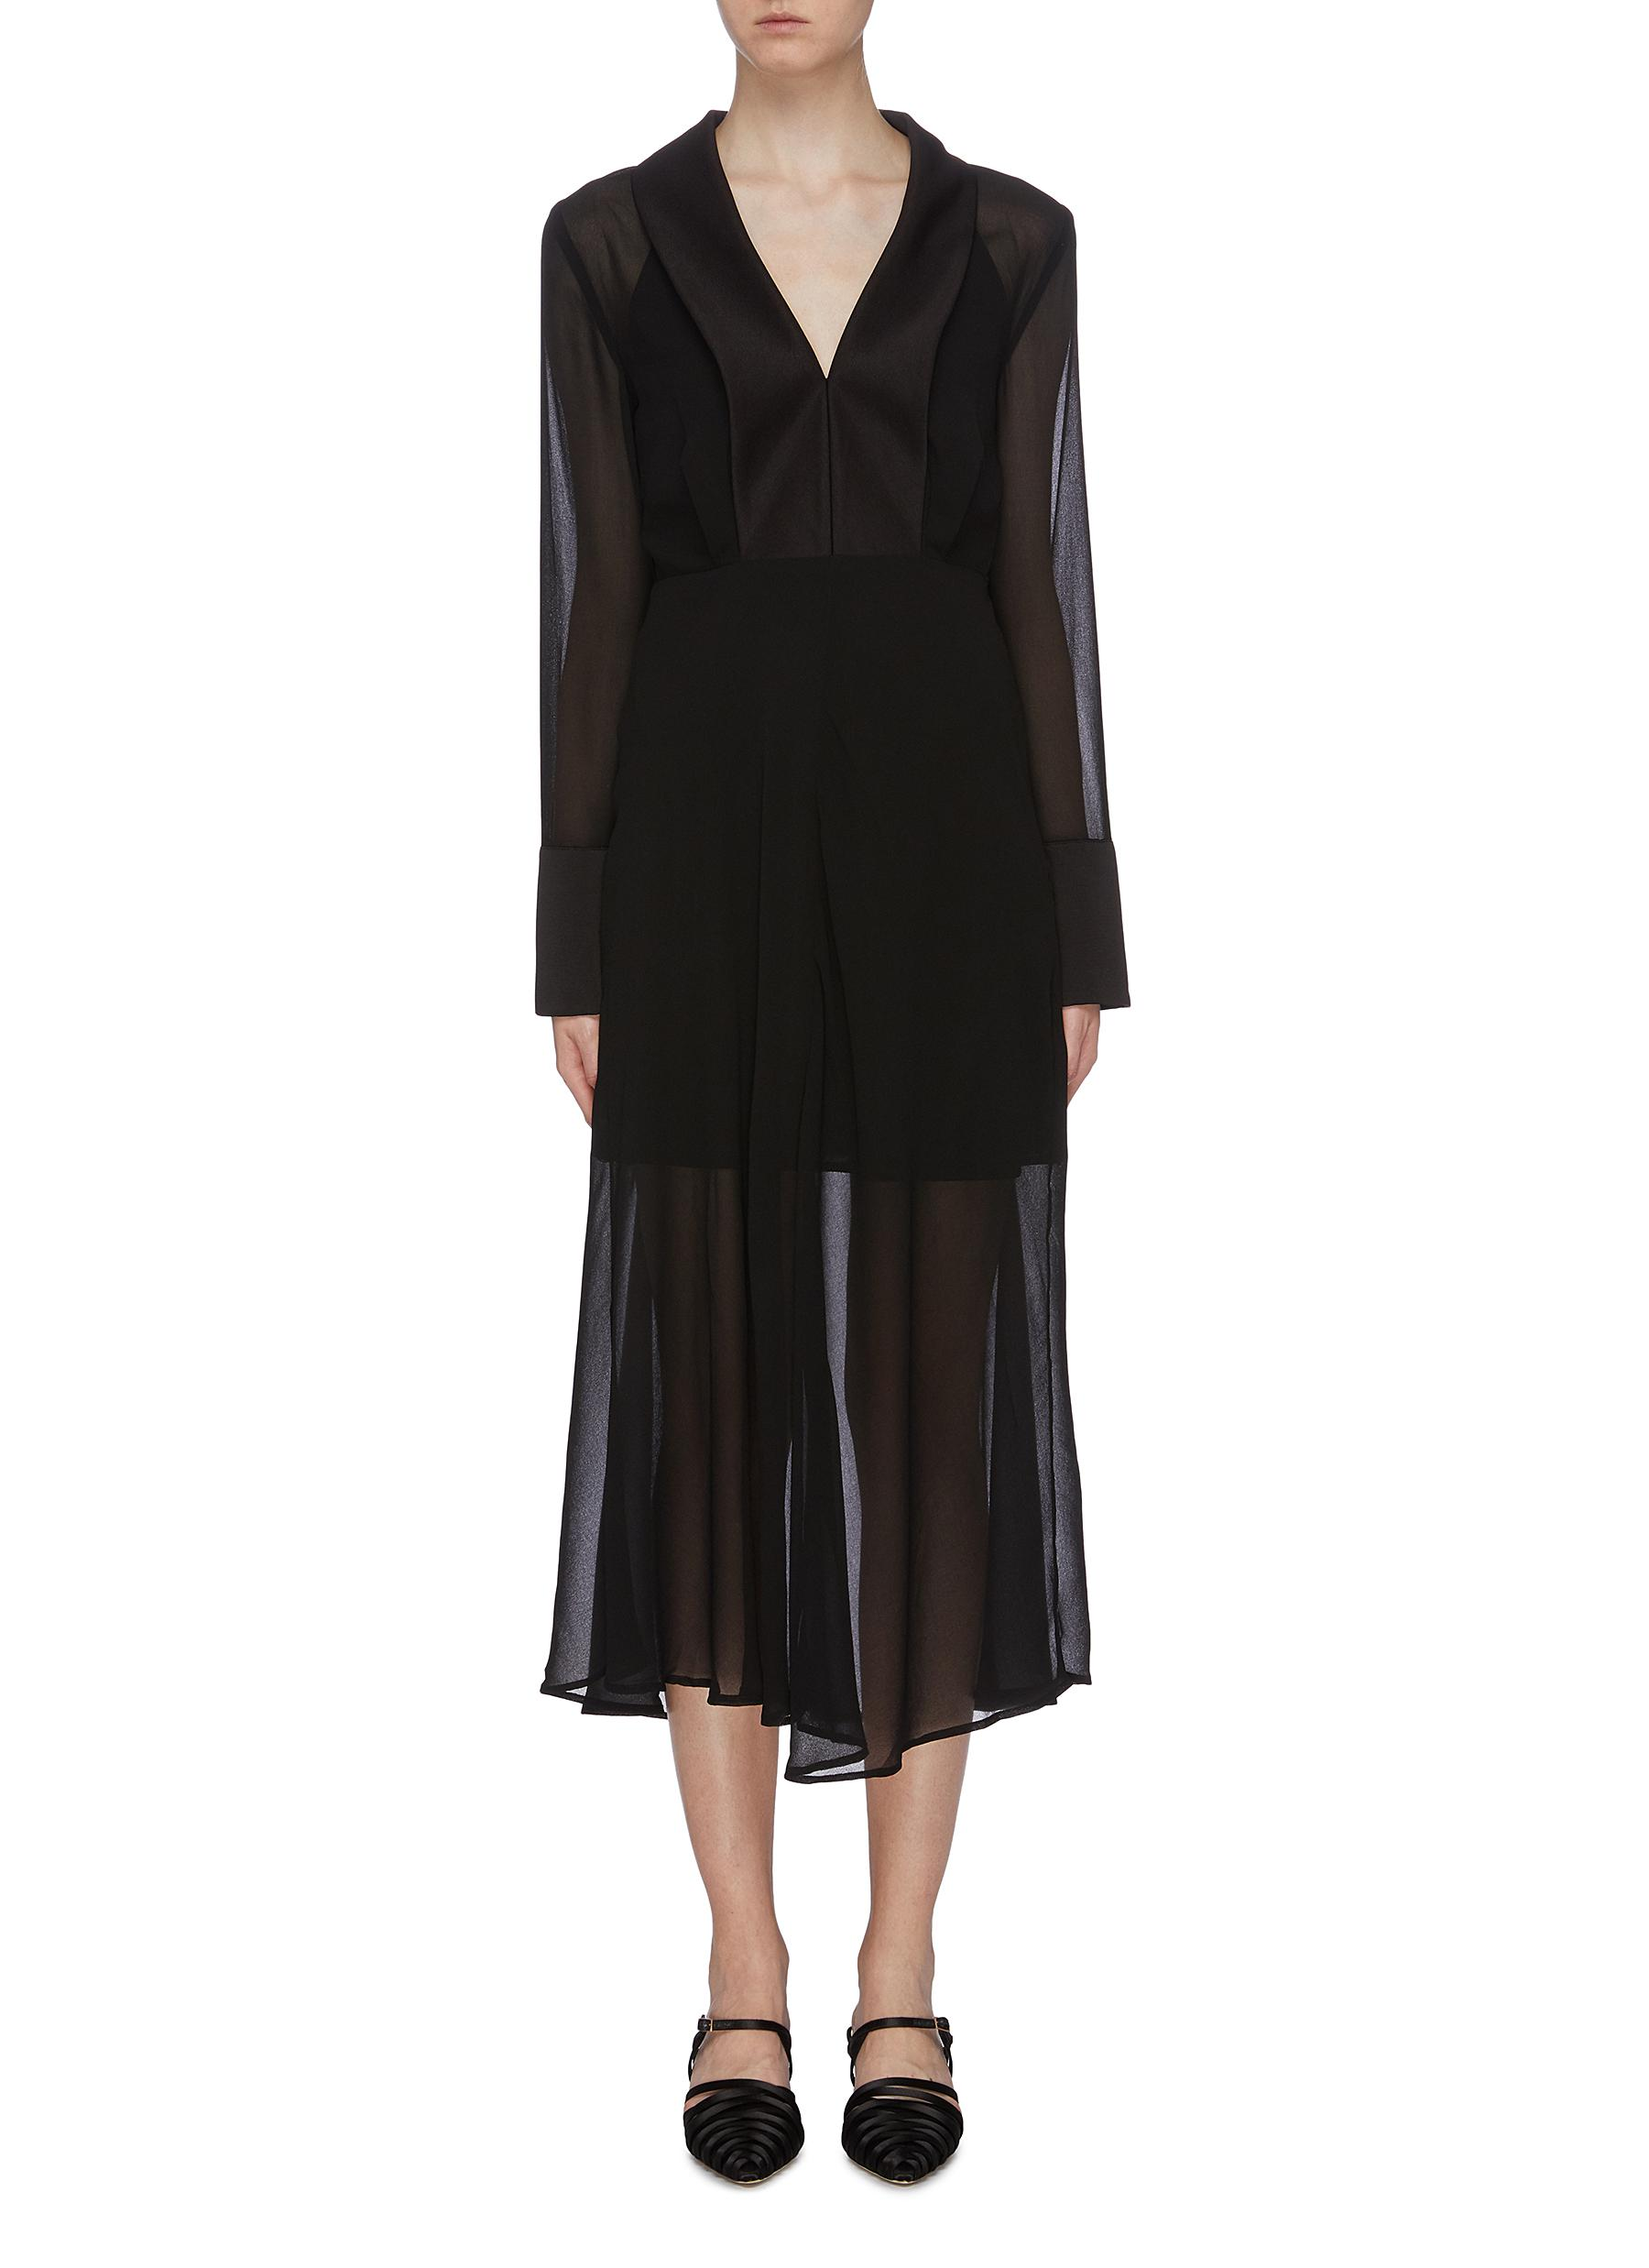 Try Again satin lapel georgette V-neck dress by C/Meo Collective